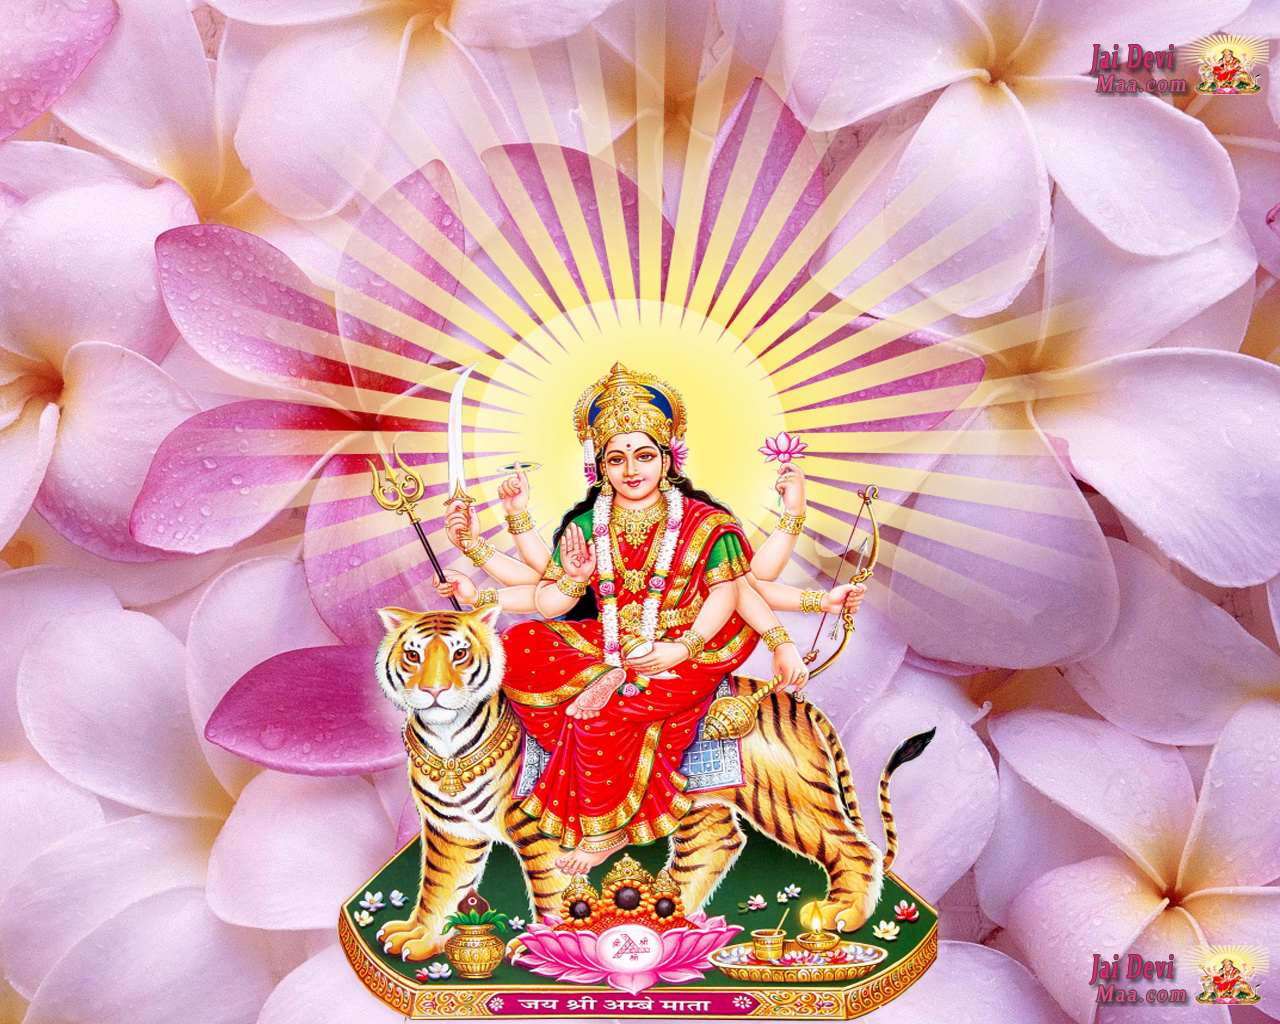 Maa Durga HD Wallpaper Free Download